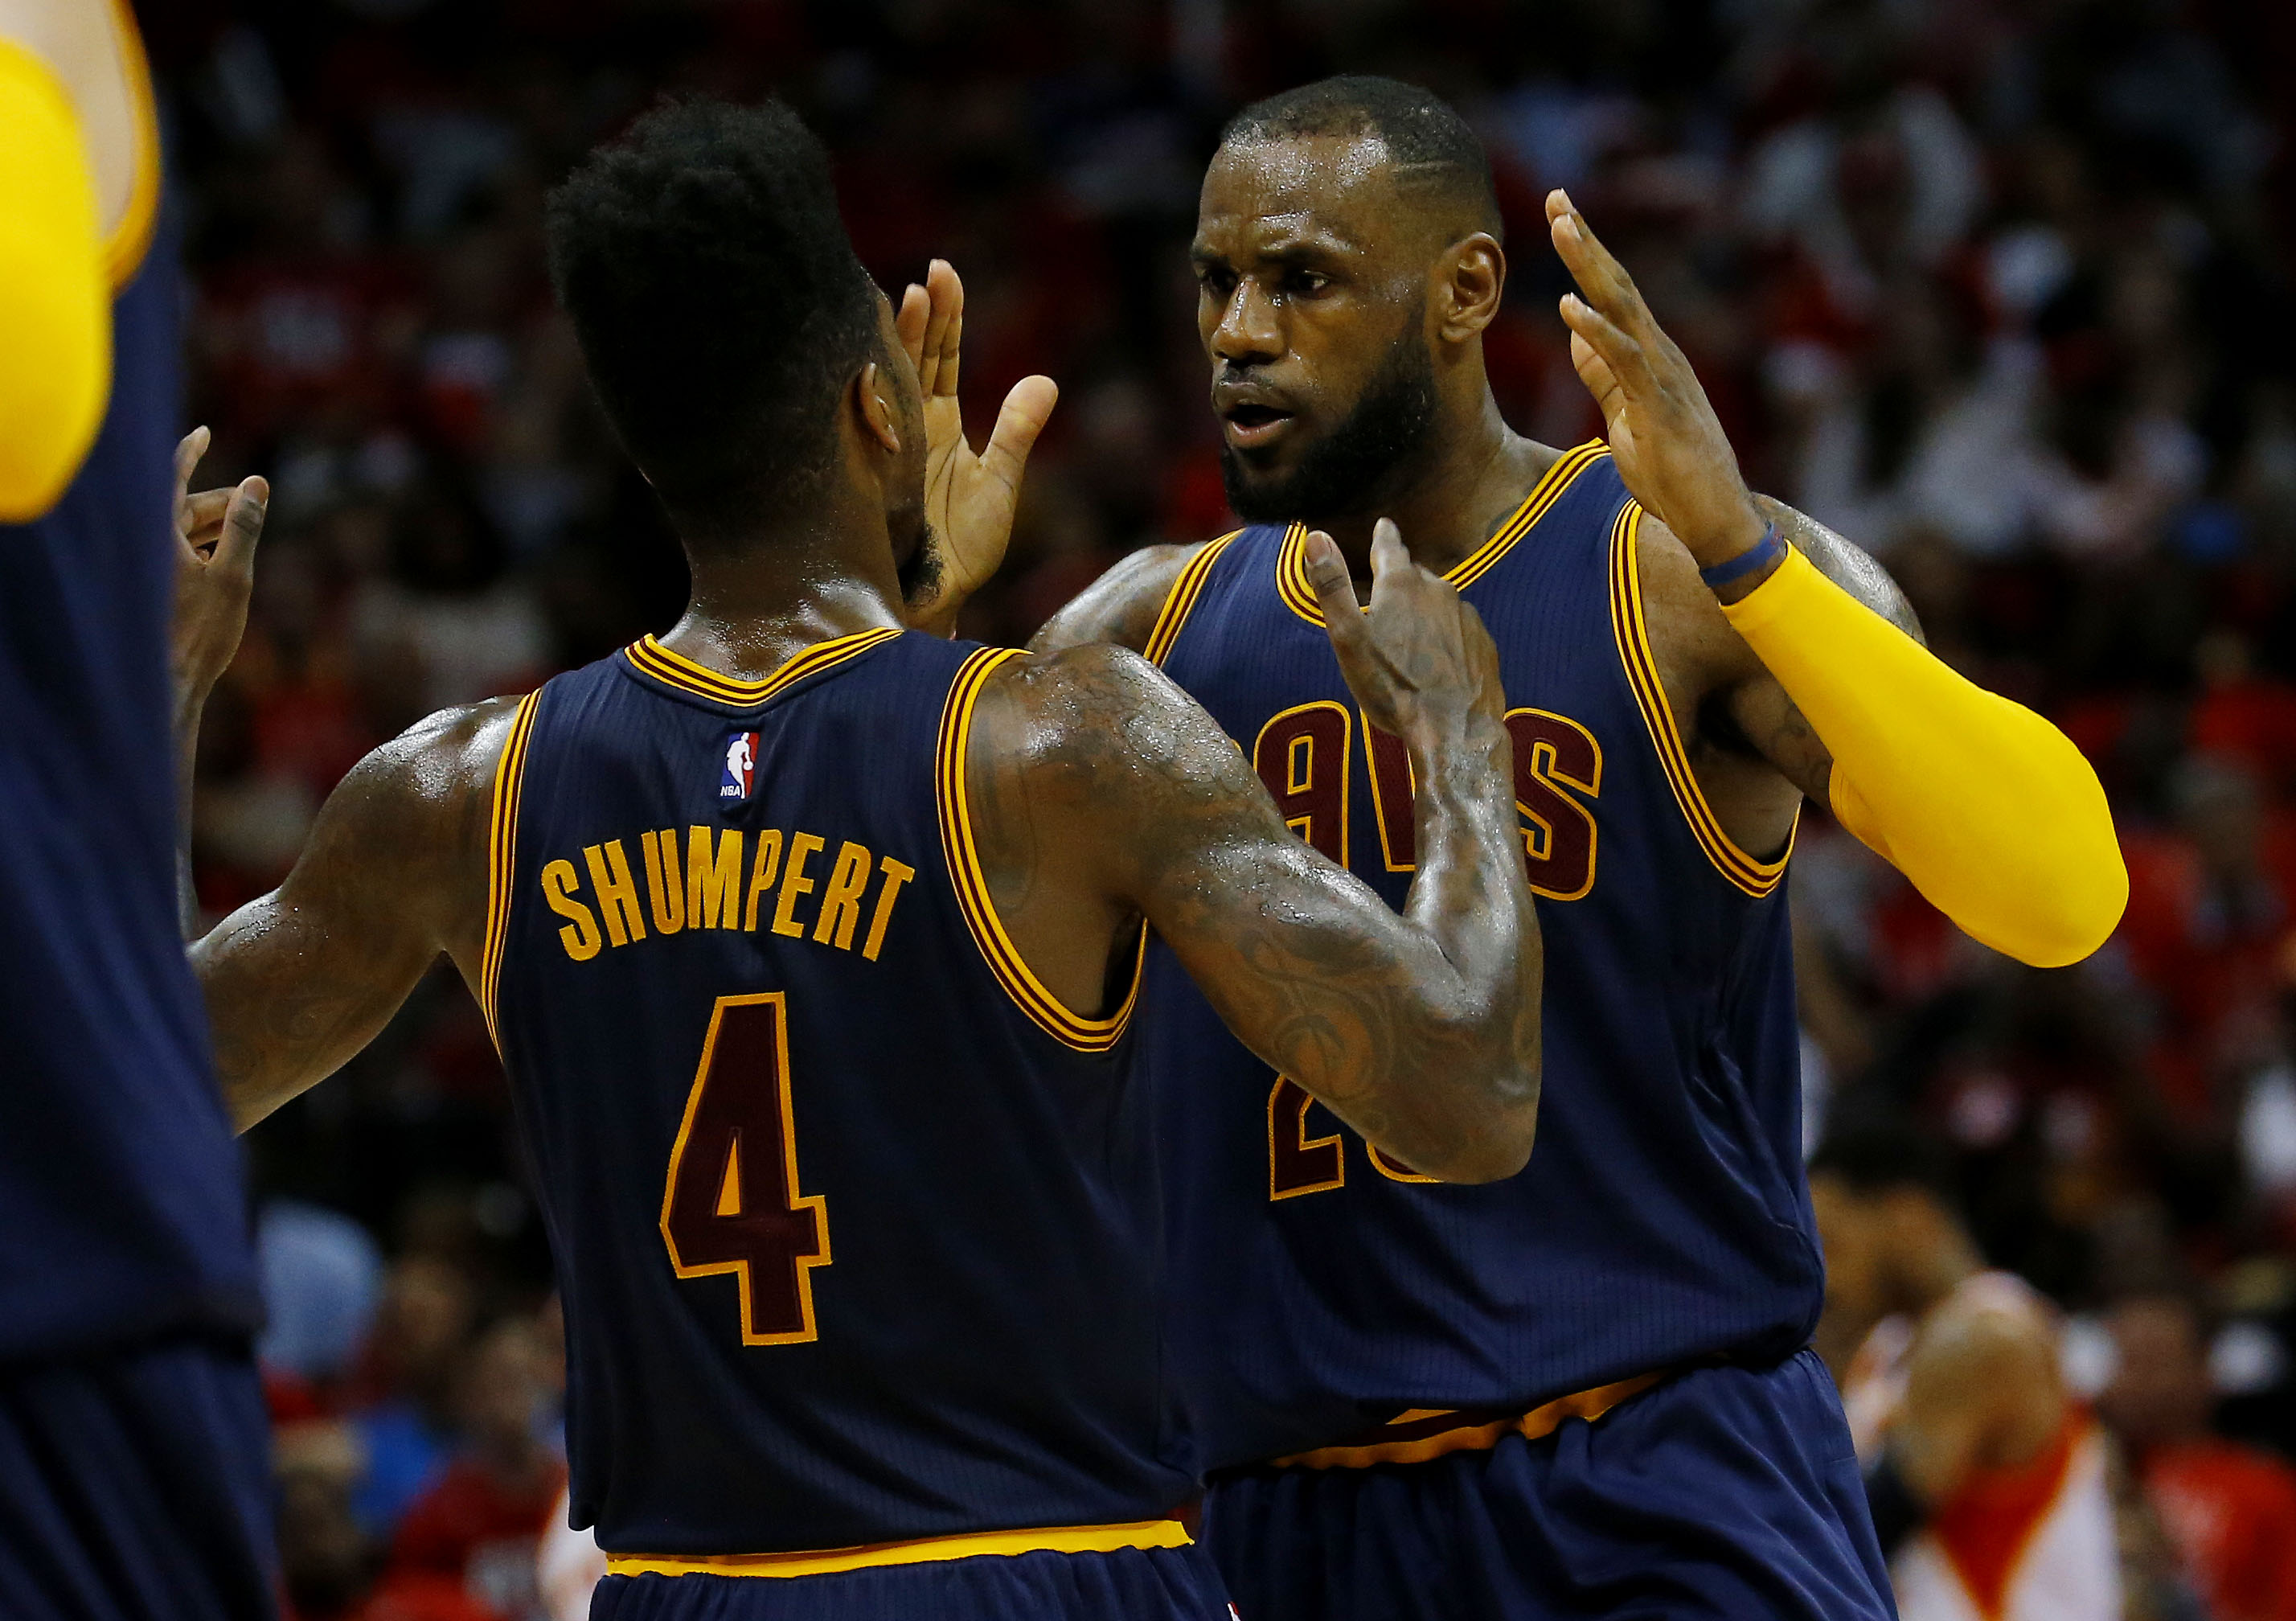 ATLANTA, GA - MAY 22:  LeBron James #23 celebrates with Iman Shumpert #4 of the Cleveland Cavaliers after scoring in the second quarter against the Atlanta Hawks during Game Two of the Eastern Conference Finals of the 2015 NBA Playoffs at Philips Arena on